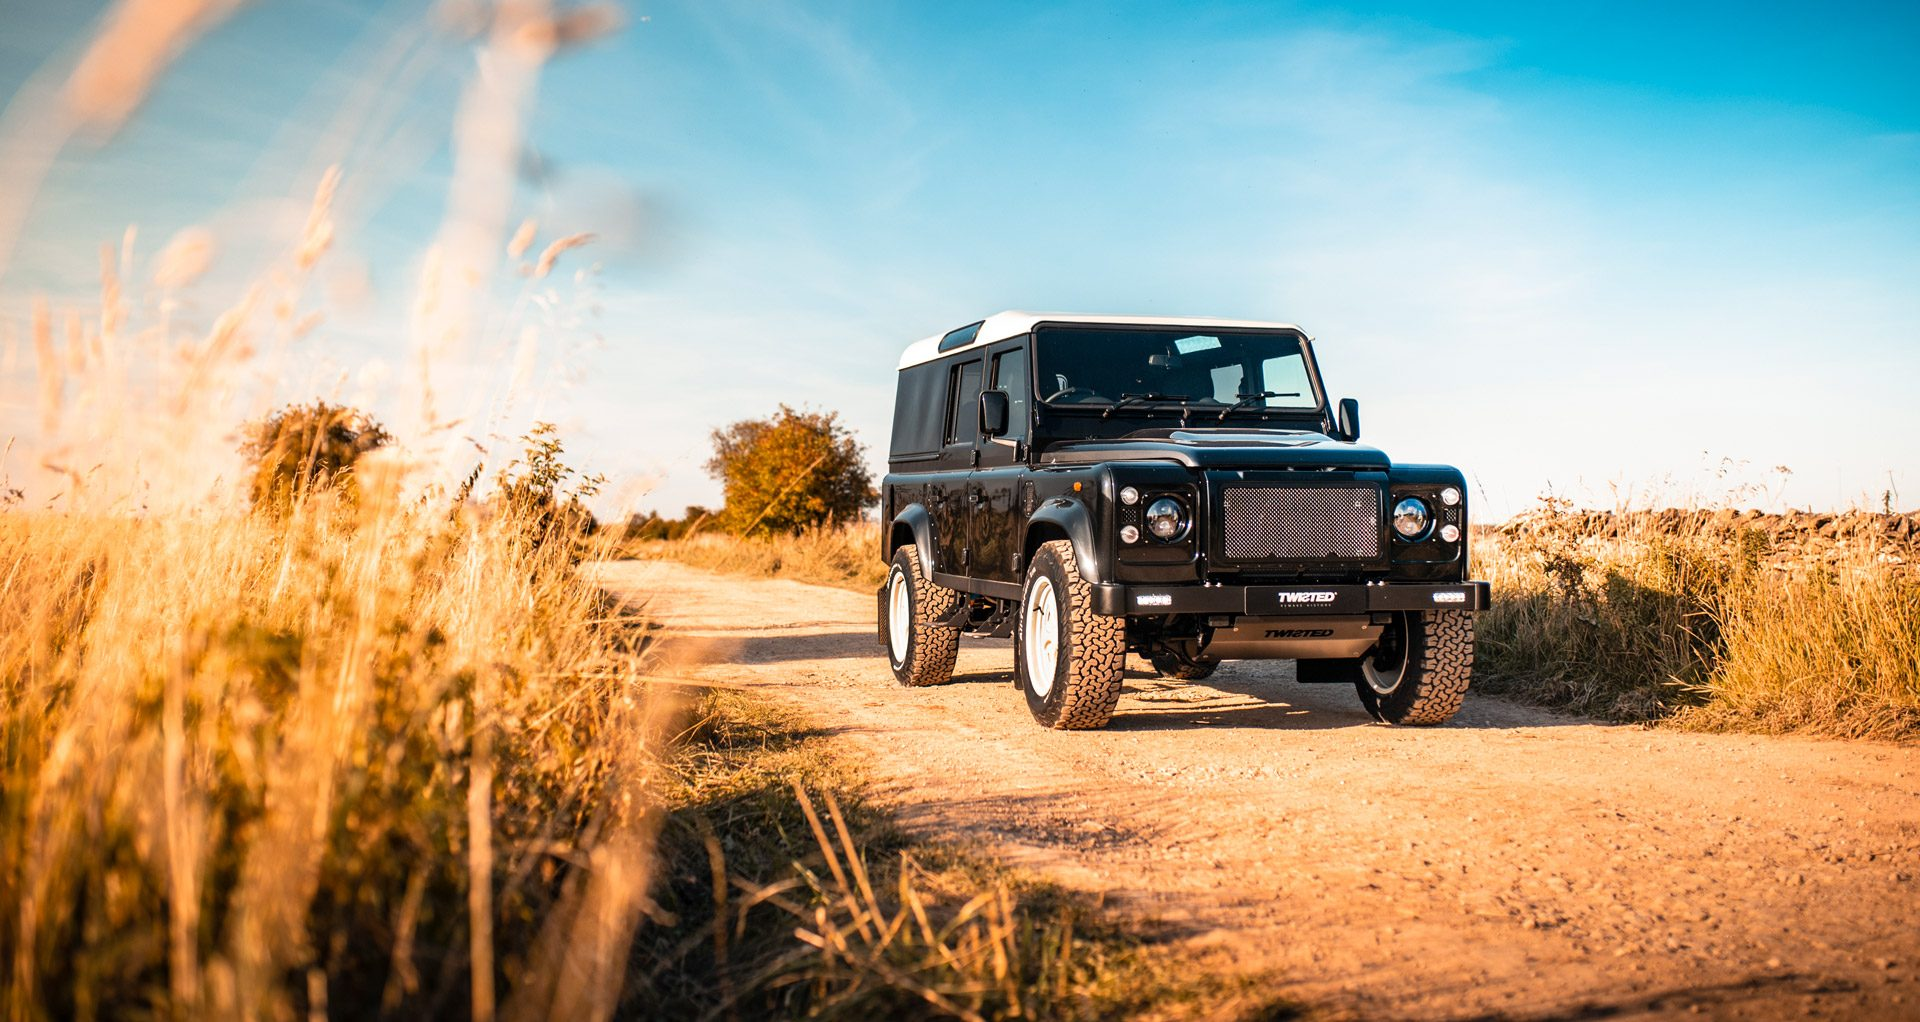 Twisted transforms the Defender into an electric 4x4